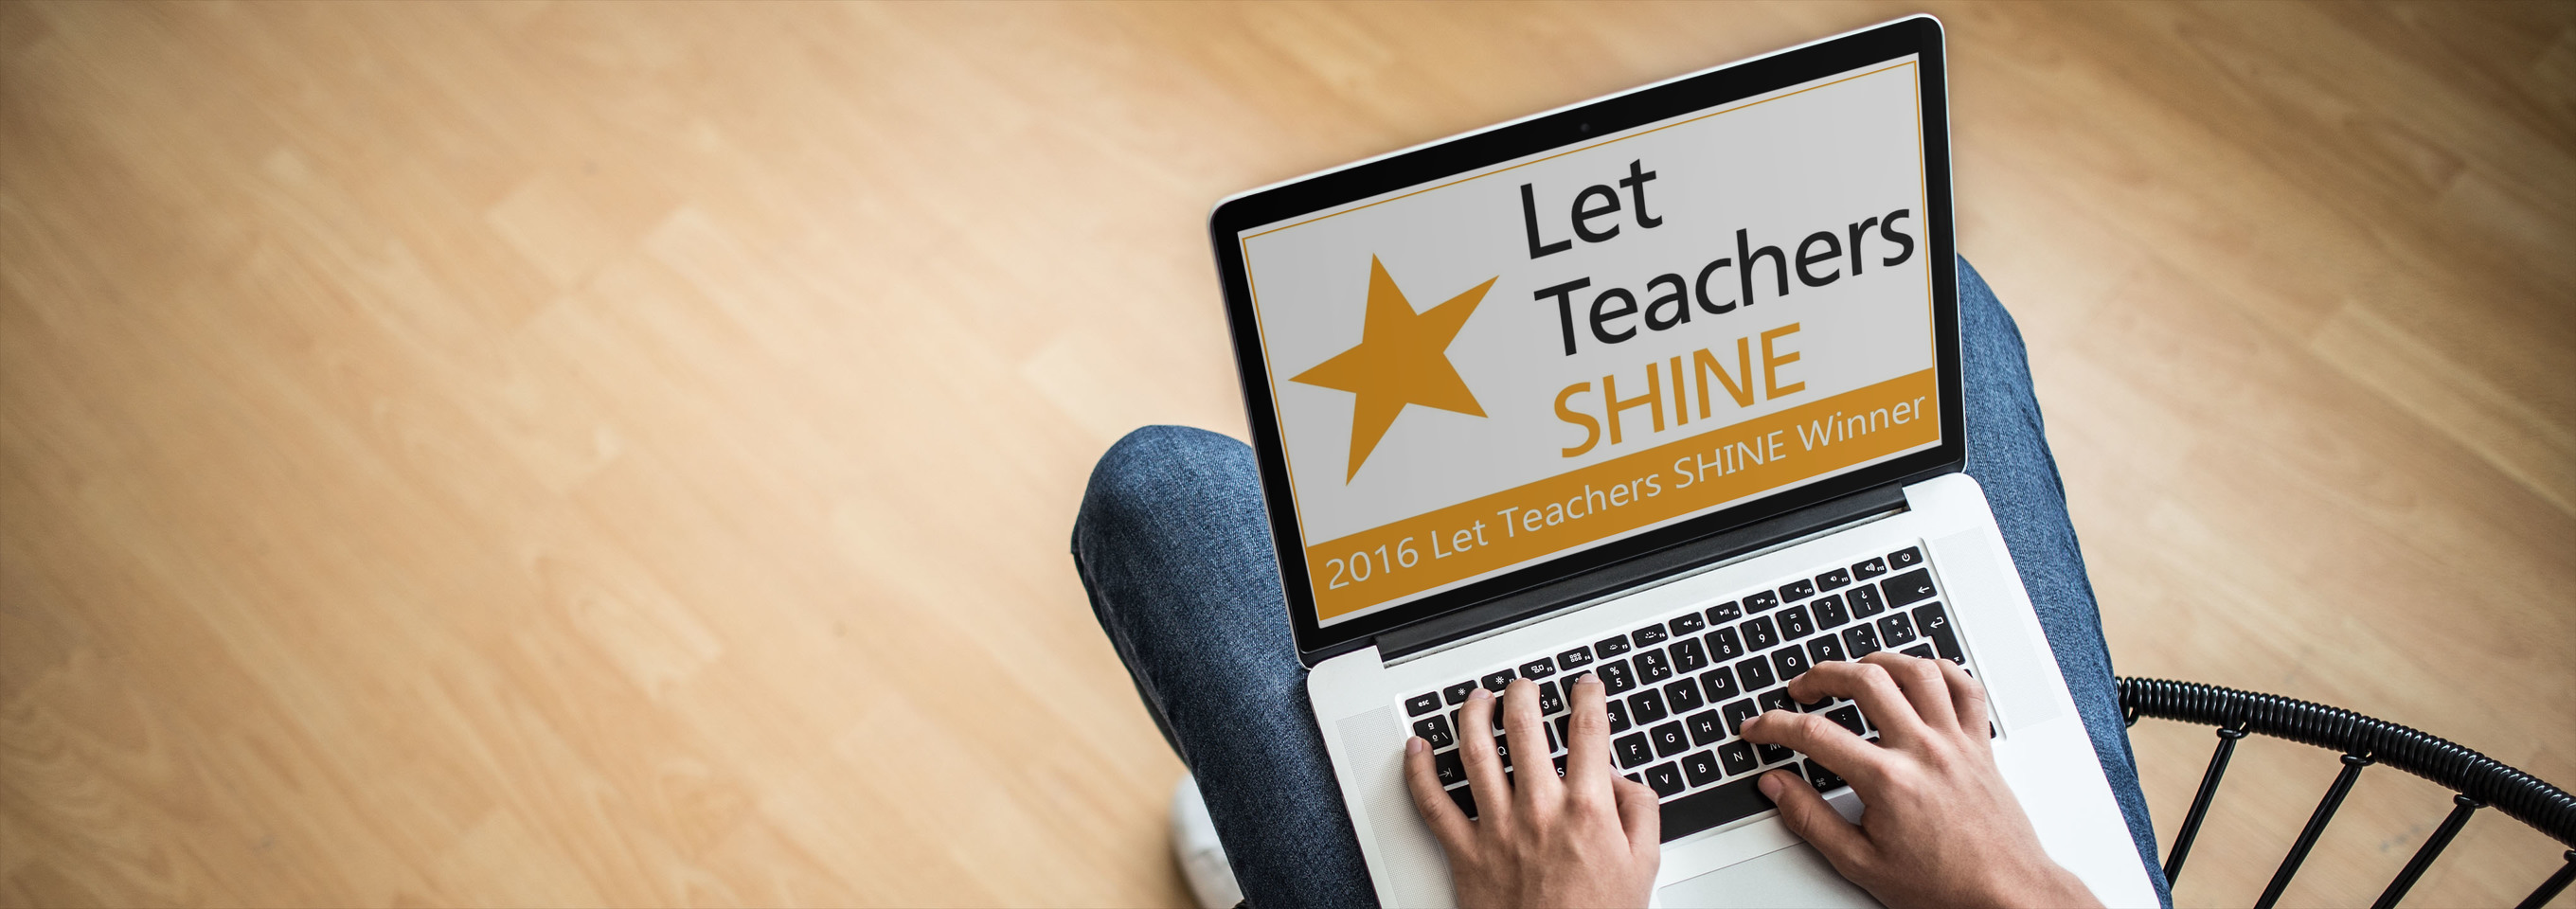 2016 & 2017 Let Teachers SHINE winner